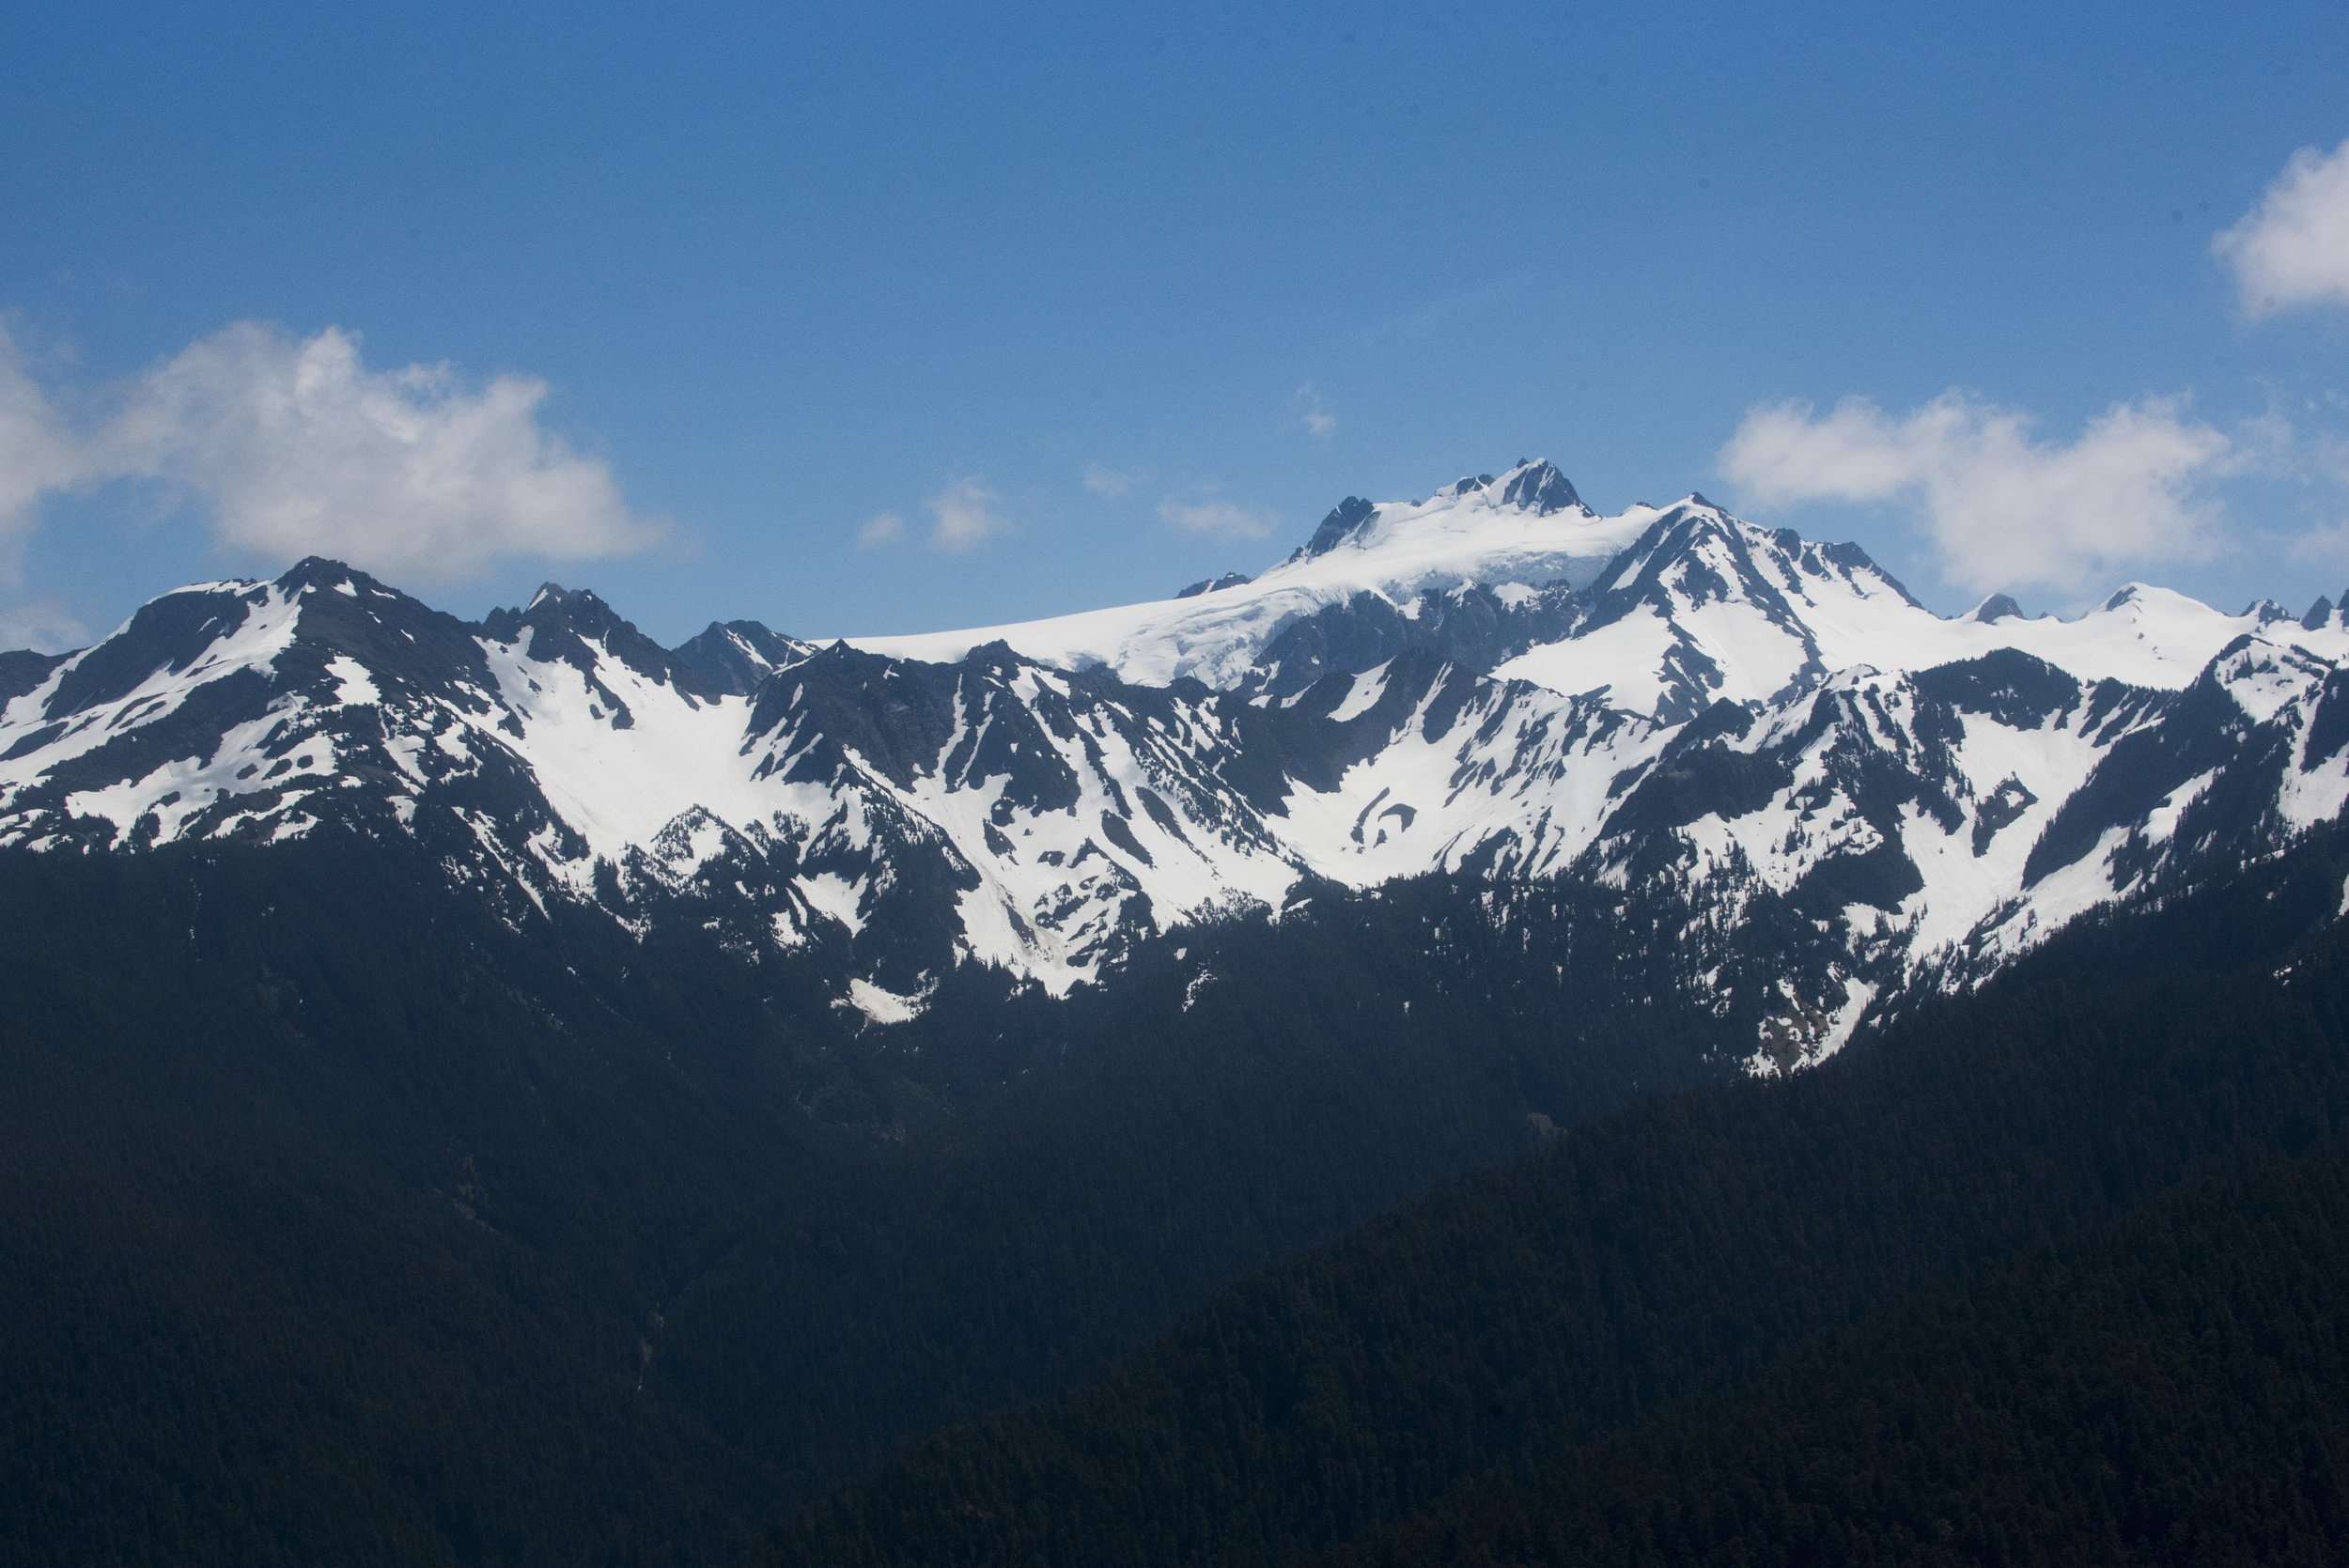 Mount Olympus in the Olympic Mountain Range. Glacier is visible as well. Photo by Hannah Letinich/LightHawk.